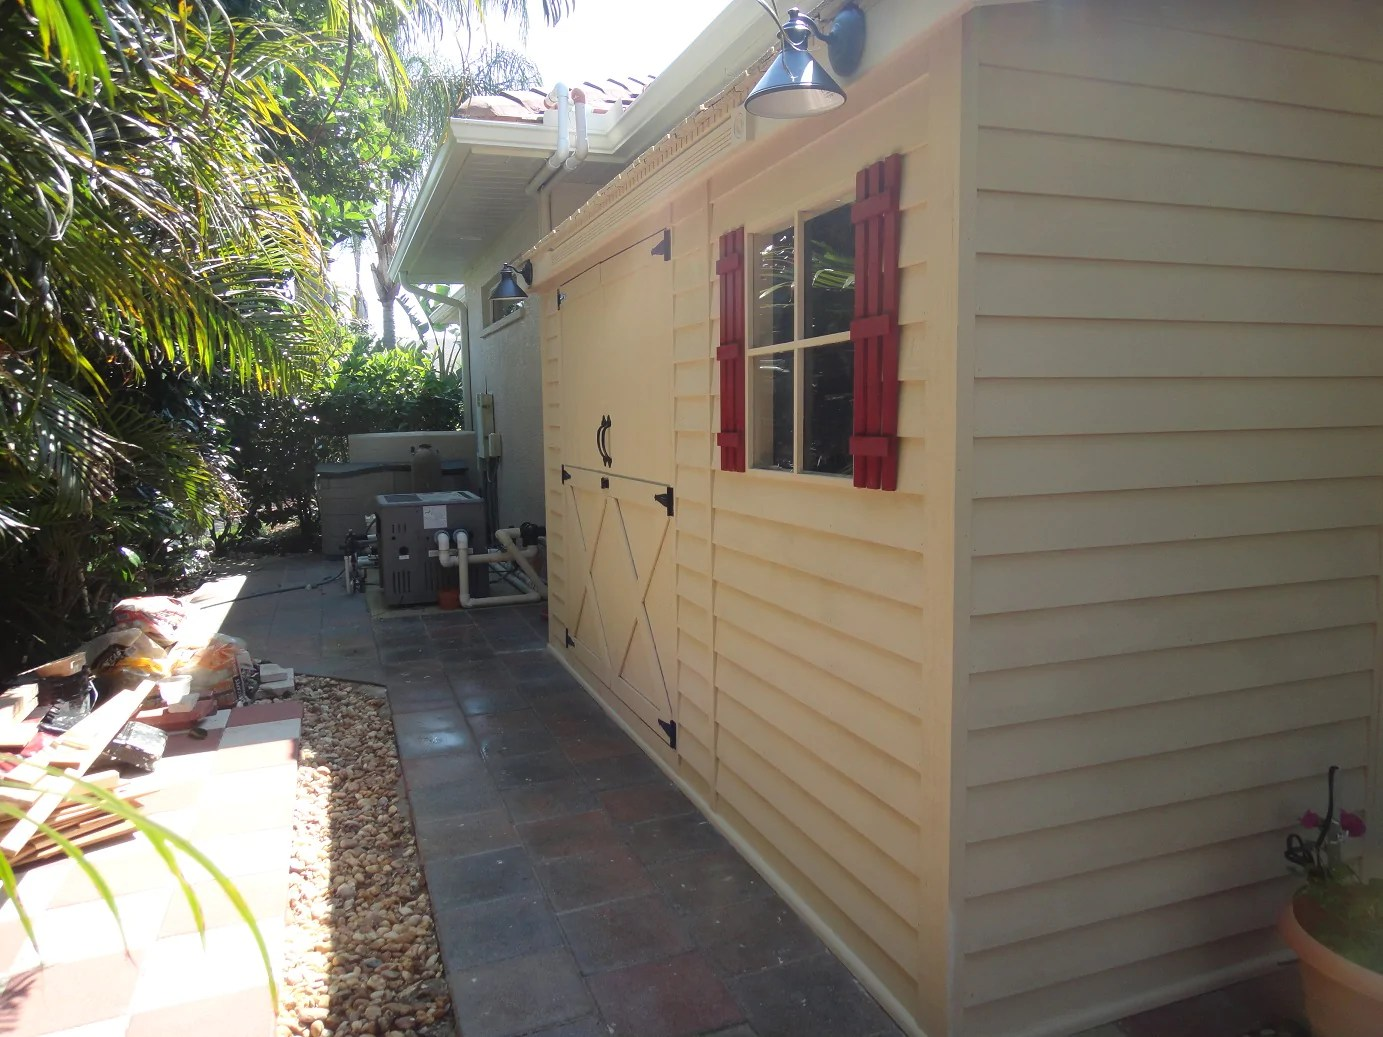 Yard Storage Sheds 8 X 4 Shed Kits Diy Lean To Style